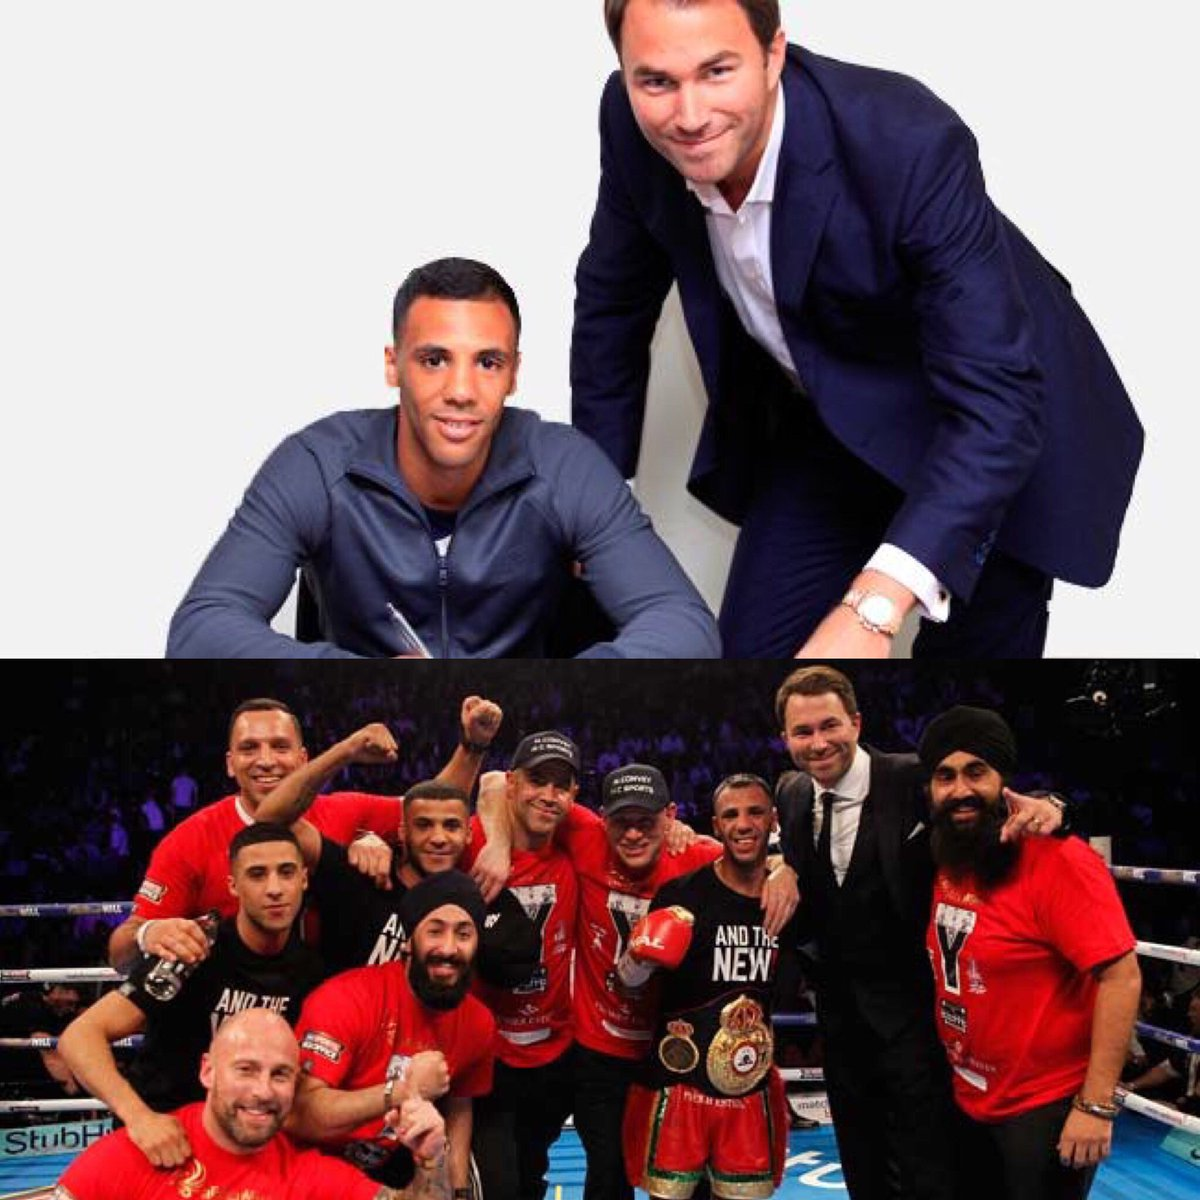 Started from the bottom now we here @eddiehearn